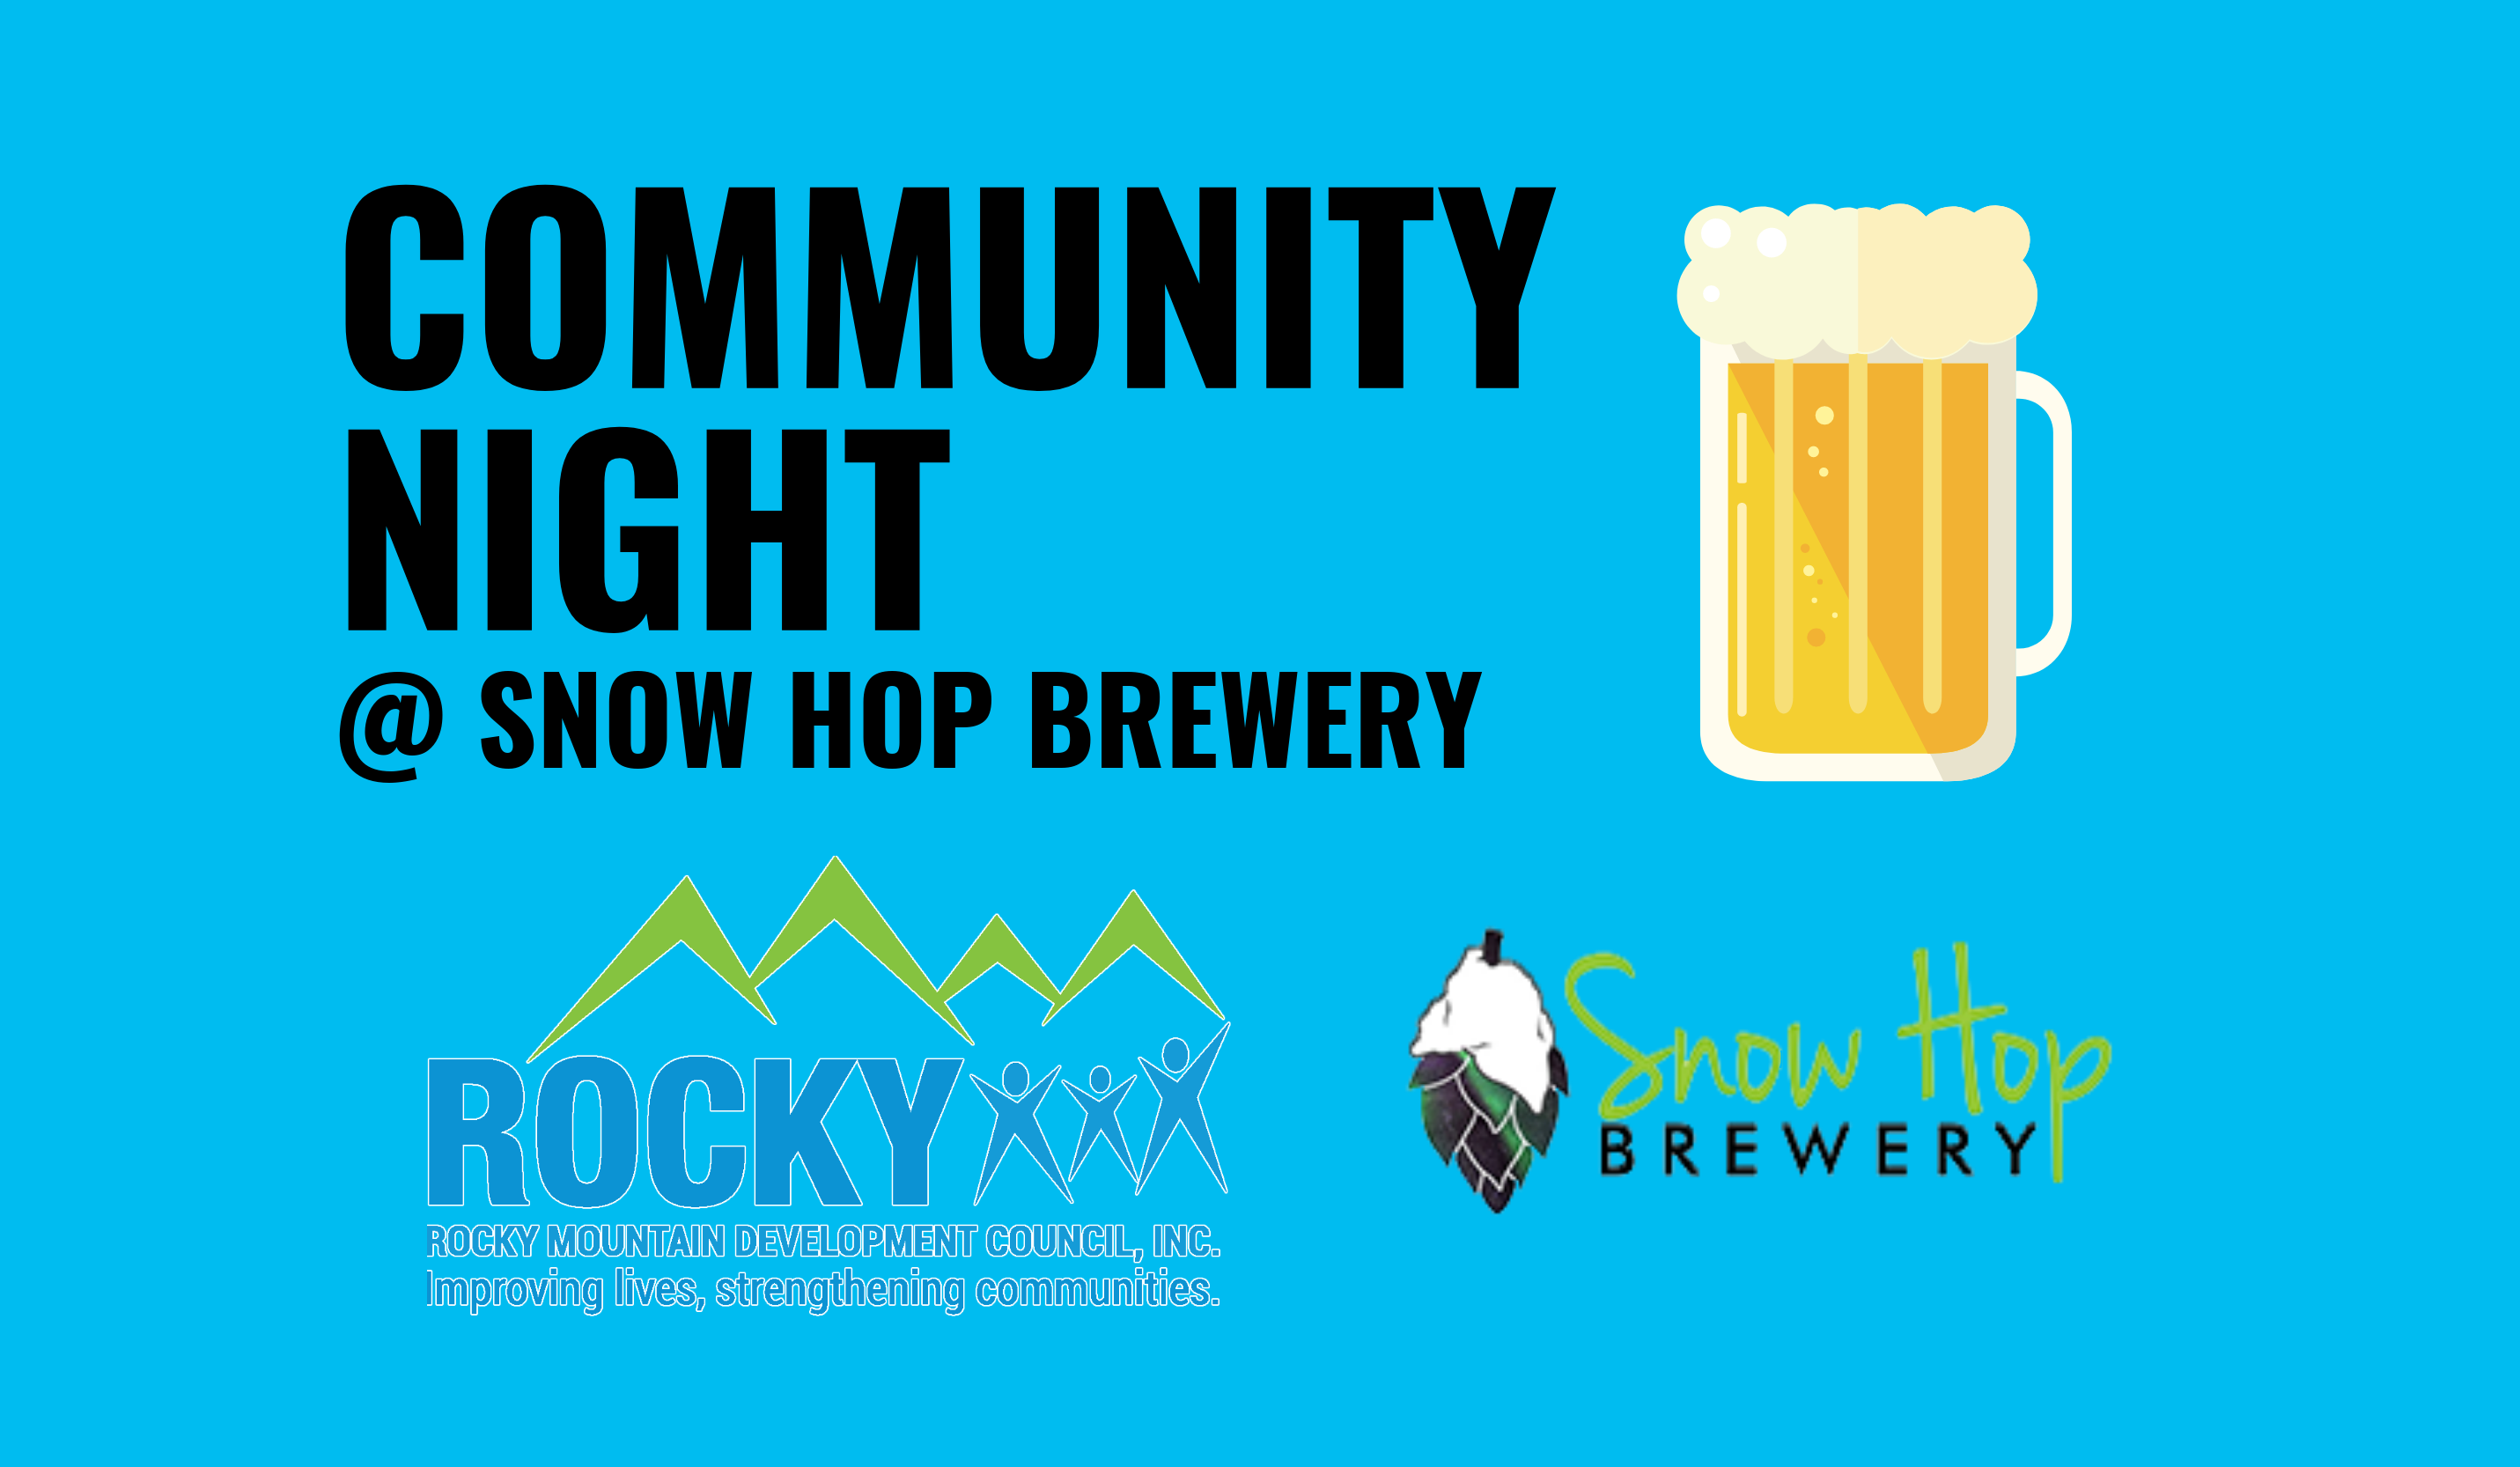 Community Night at Snow Hop Brewery